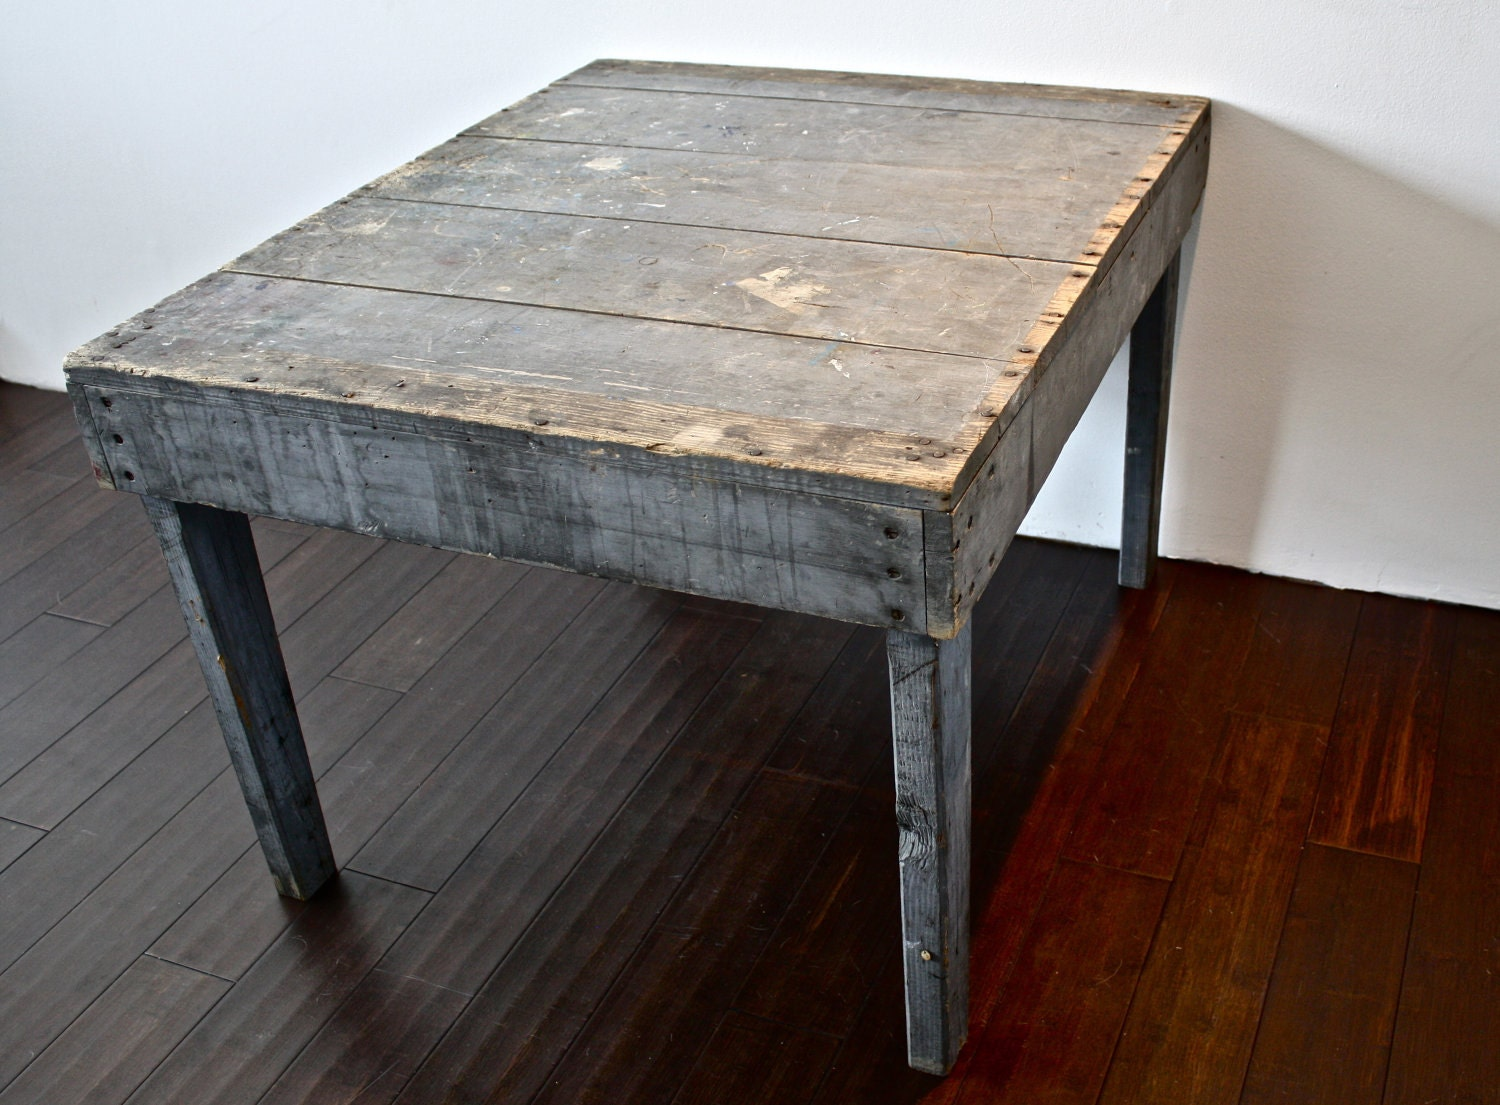 Grey Wood Plank Coffee Table By Reclaimbk On Etsy